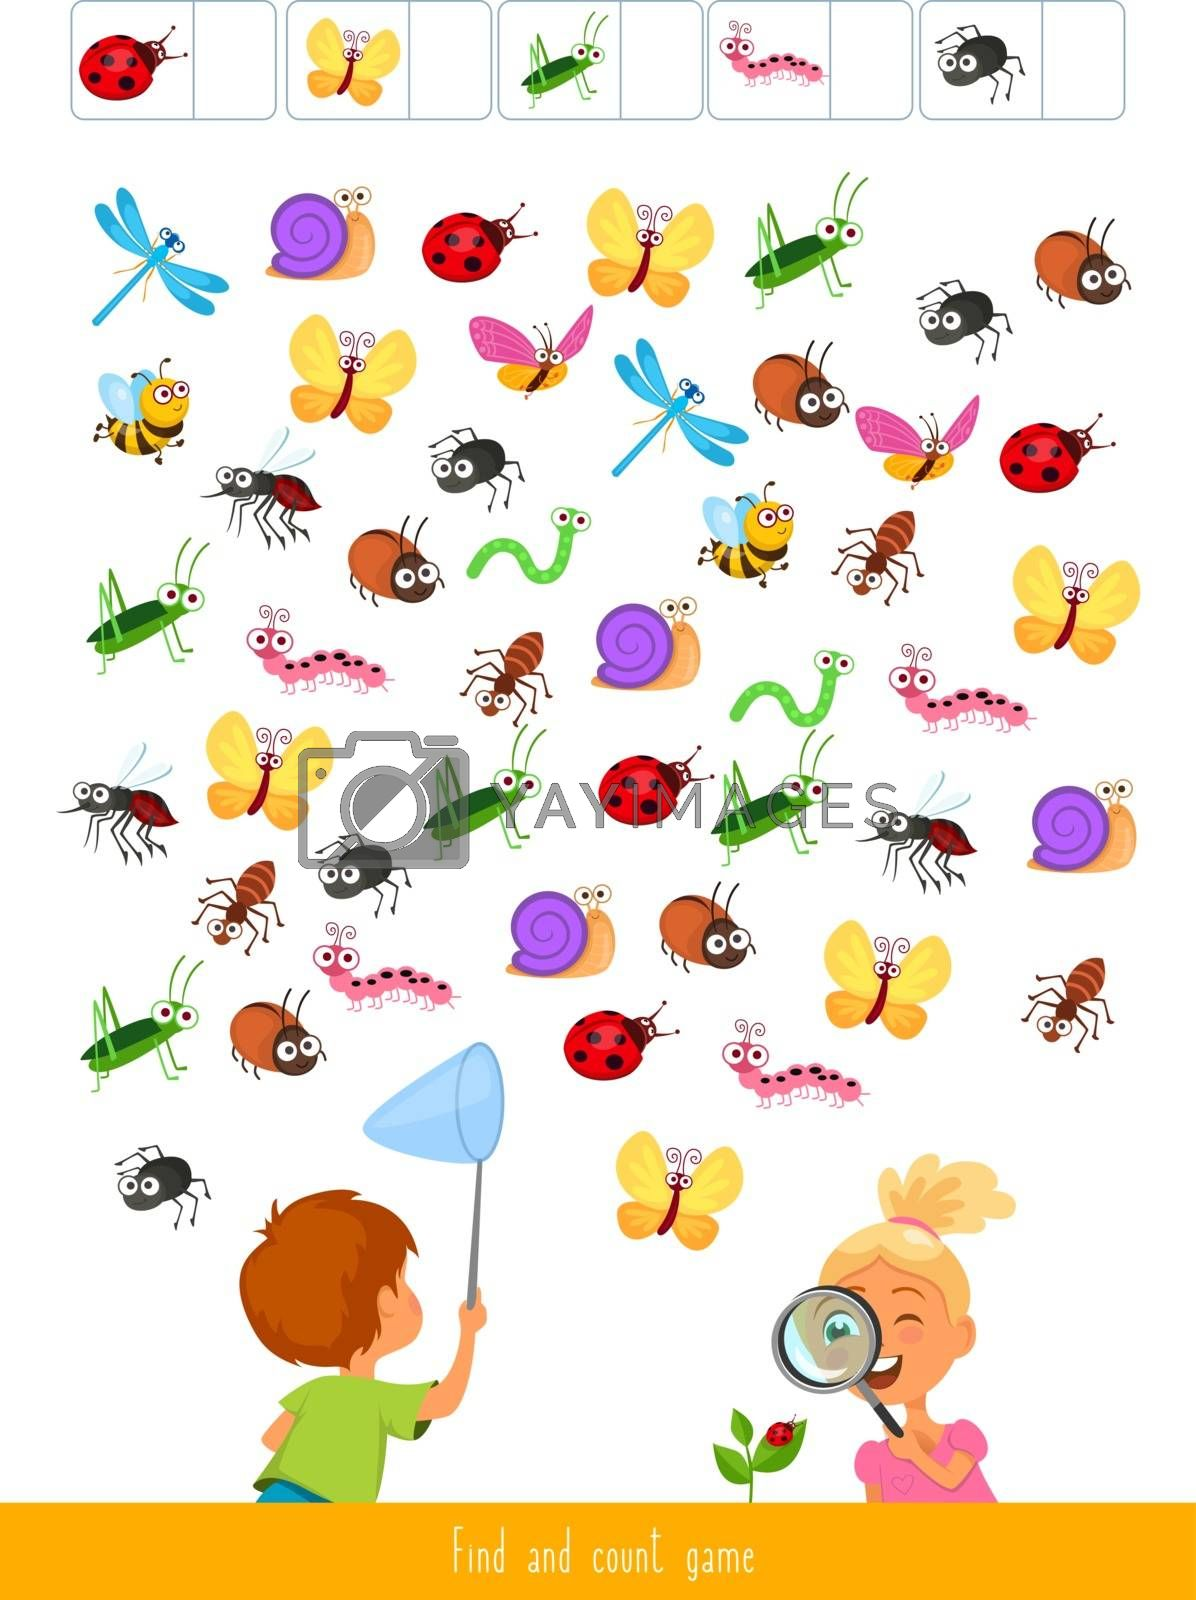 Educational children game, vector illustration. Find and count game.